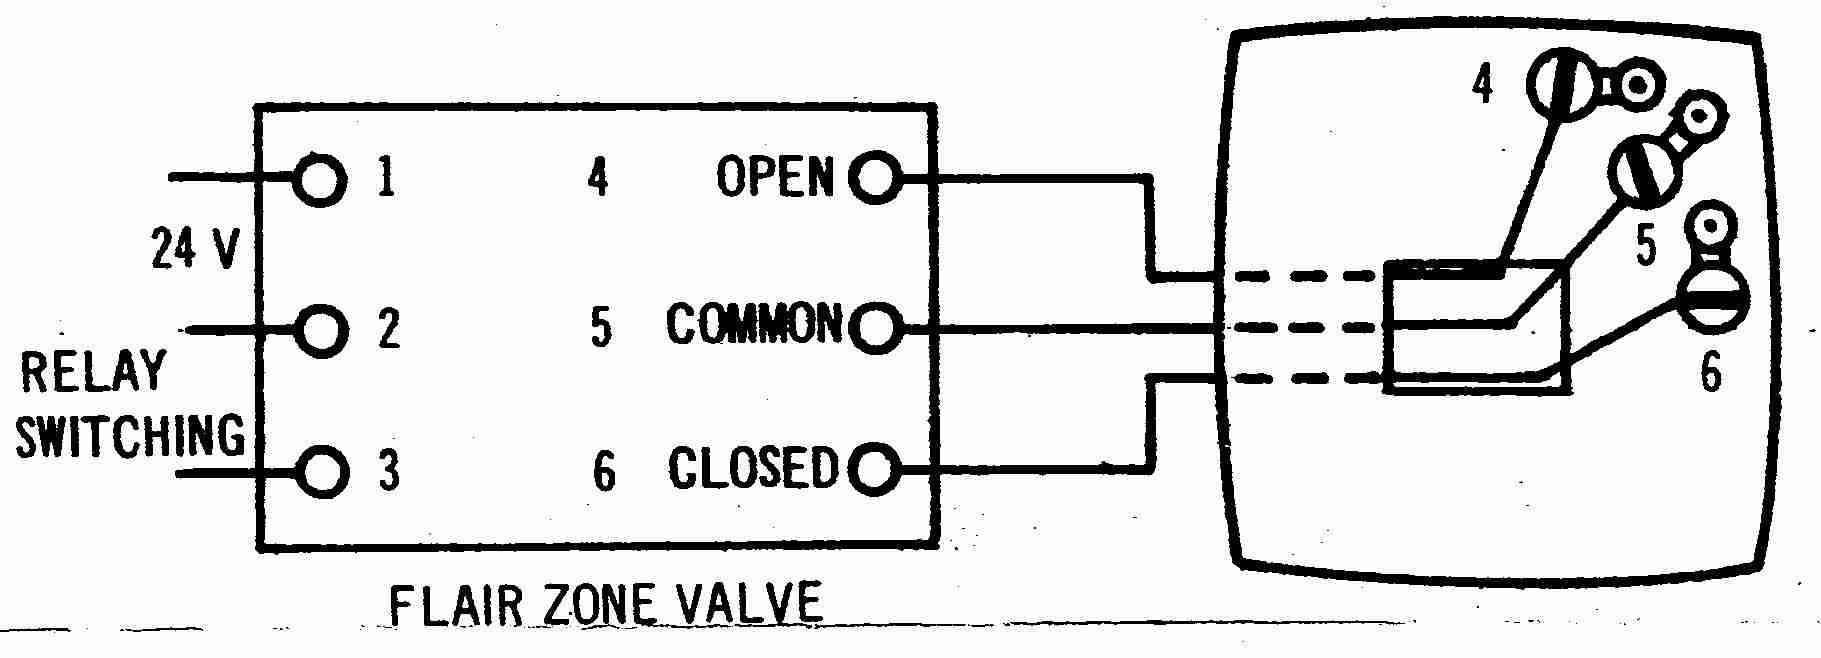 Zone Valve Wiring Installation & Instructions: Guide To